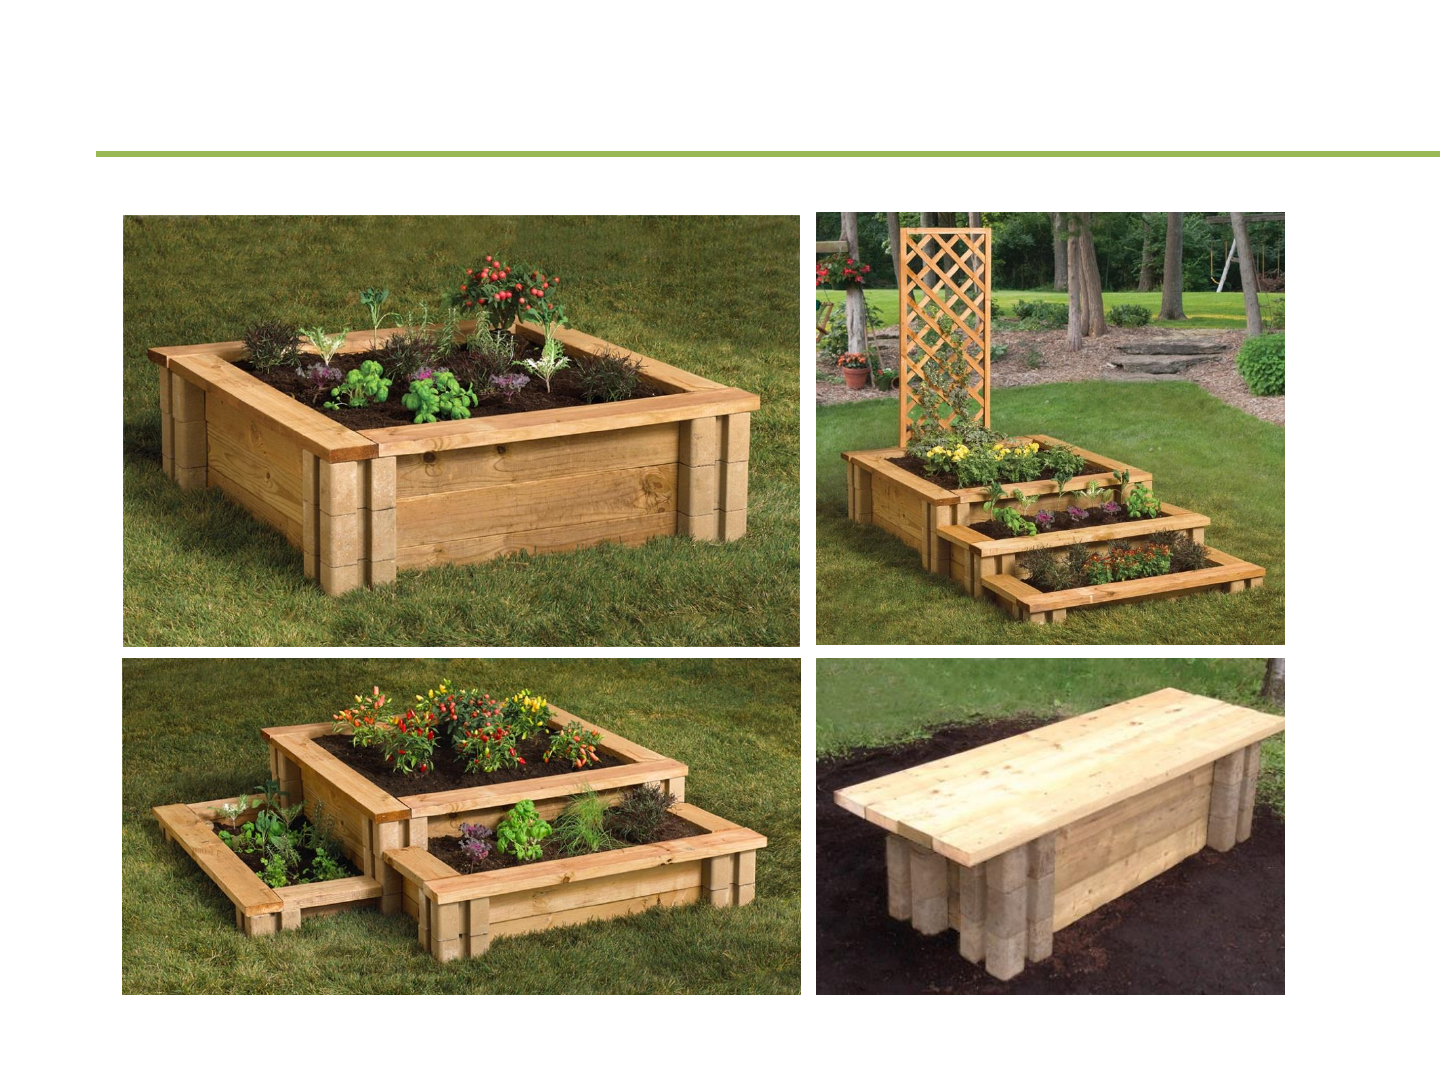 Available at Home Depot Edible landscaping, Making